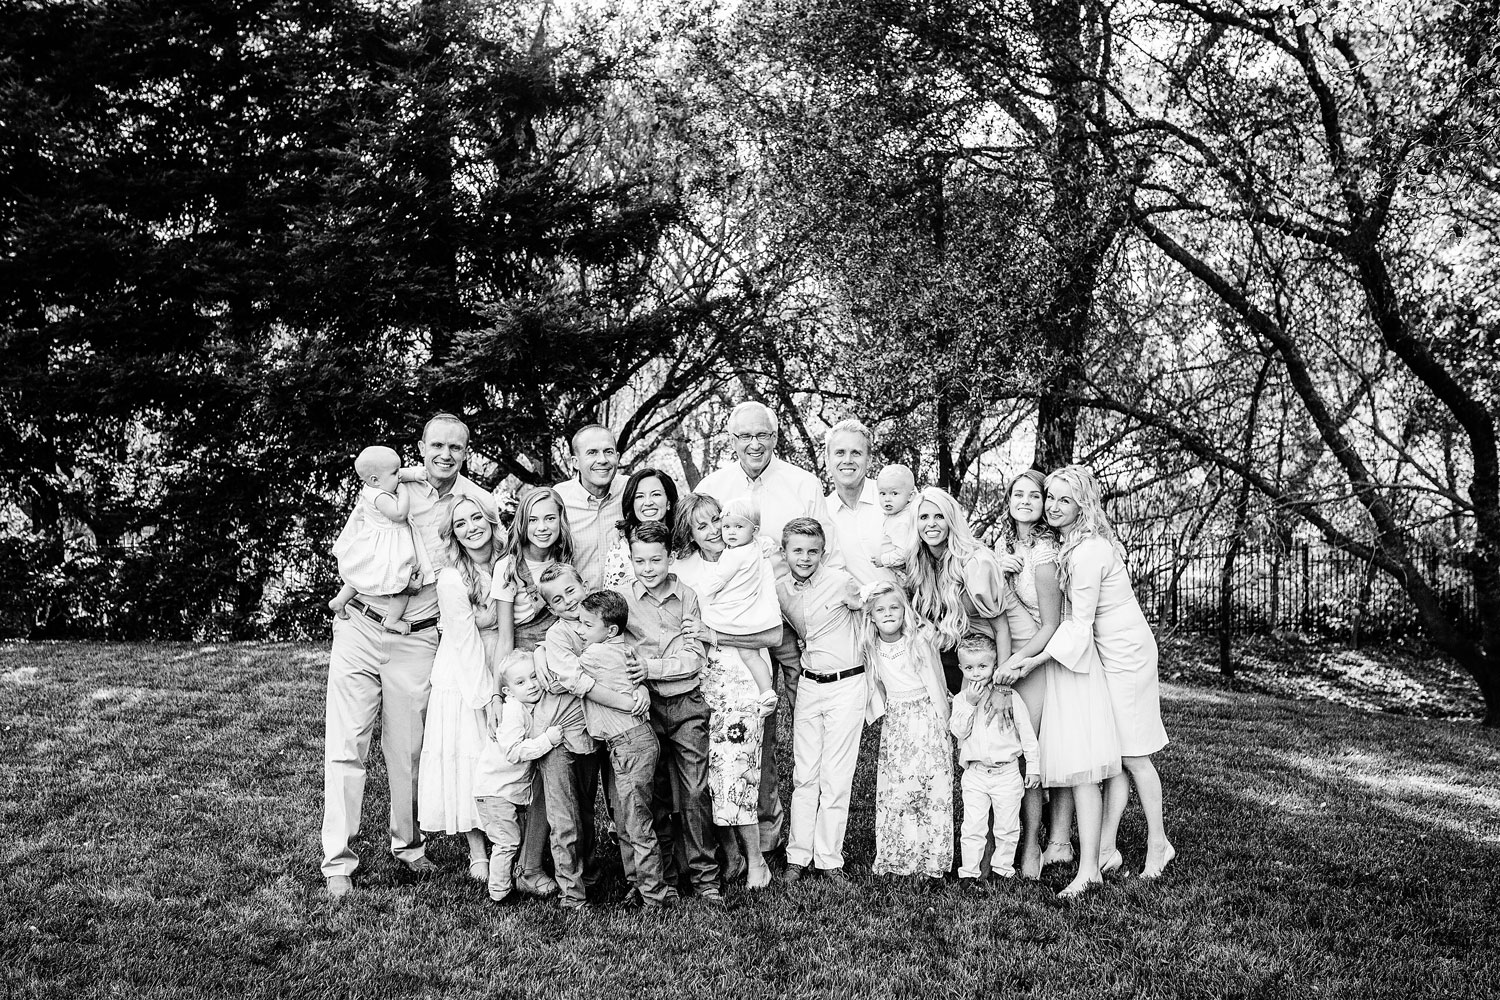 A large group extended family photo session takes place in the Sacramento, California area with Amy Wright Photography.